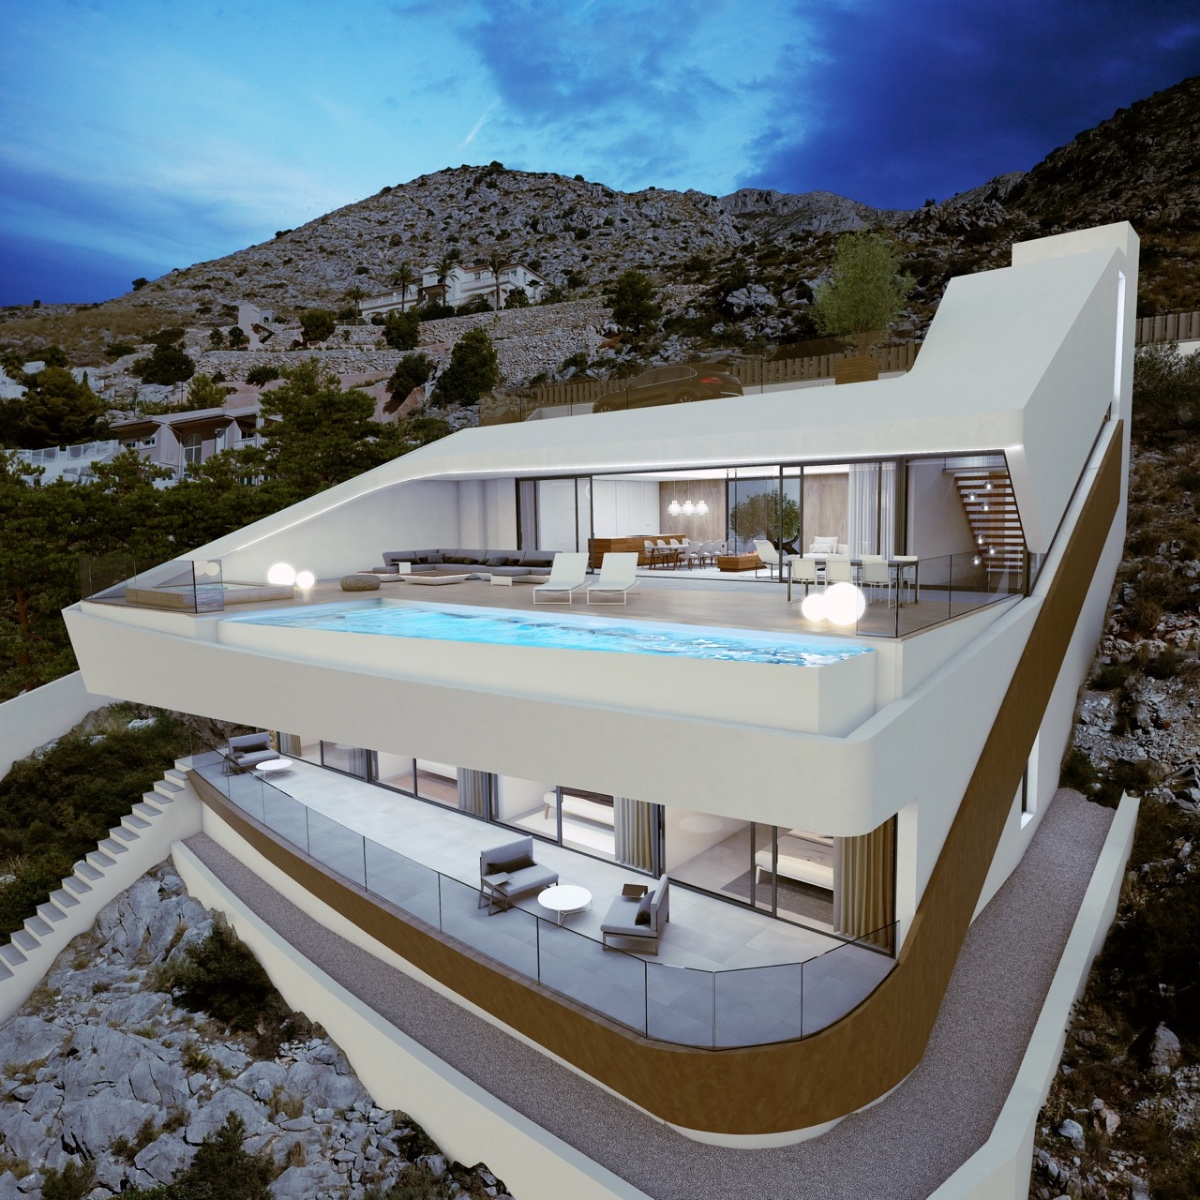 Luxury sea view villa situated inthe beautiful hills of Altea, just 5 minutes drive from,Spain